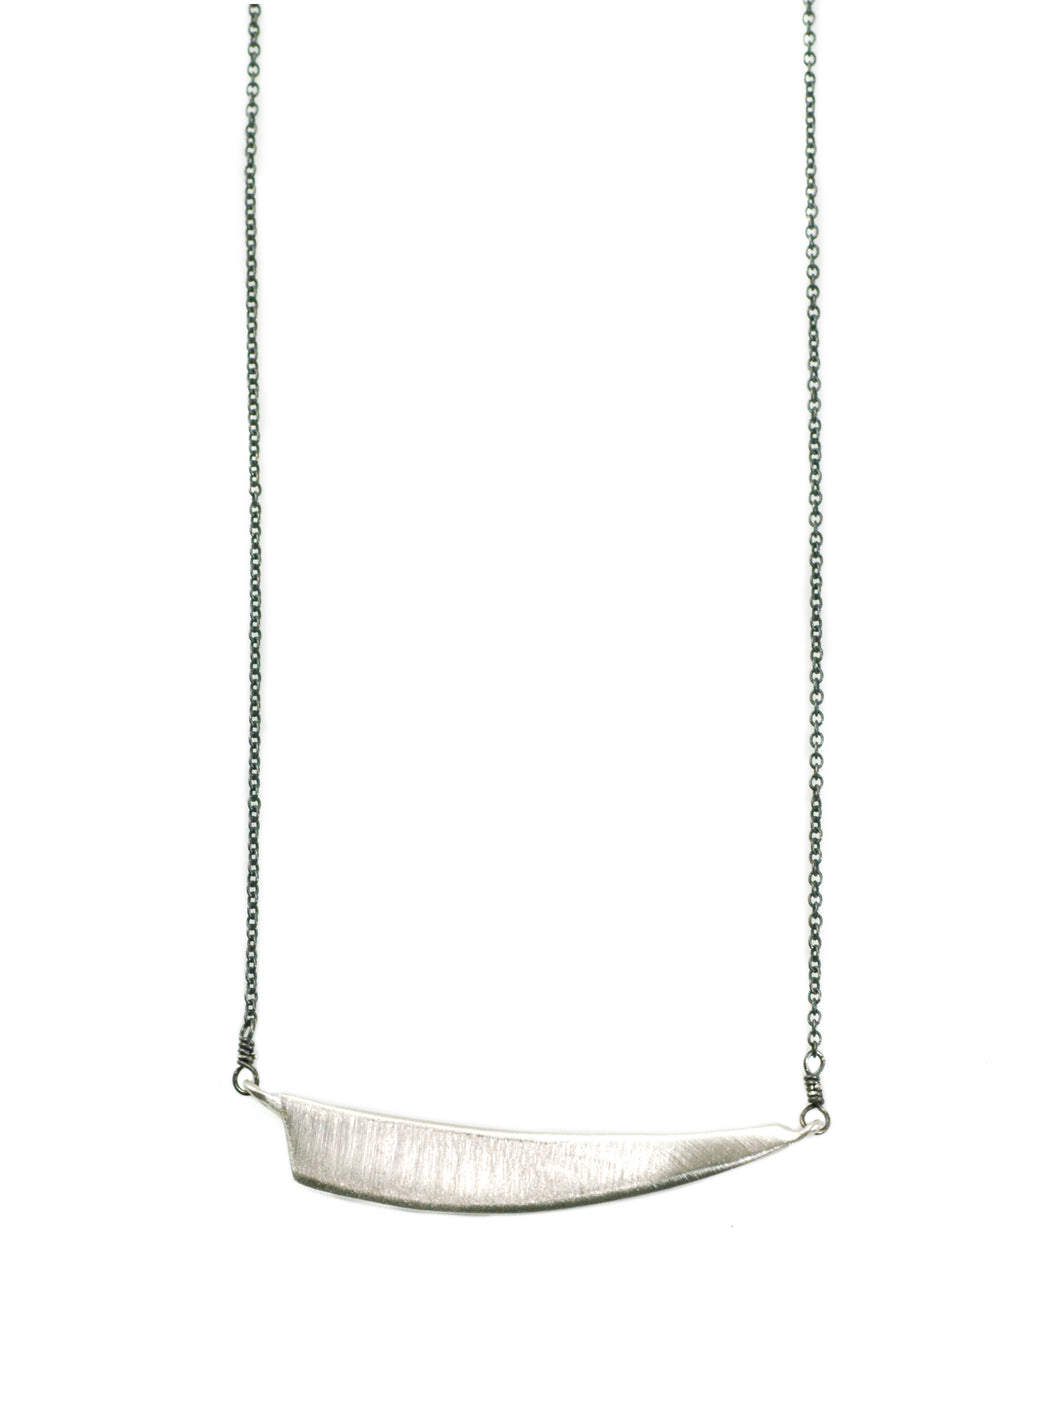 Philippa Roberts: Medium curved triangle. silver necklace